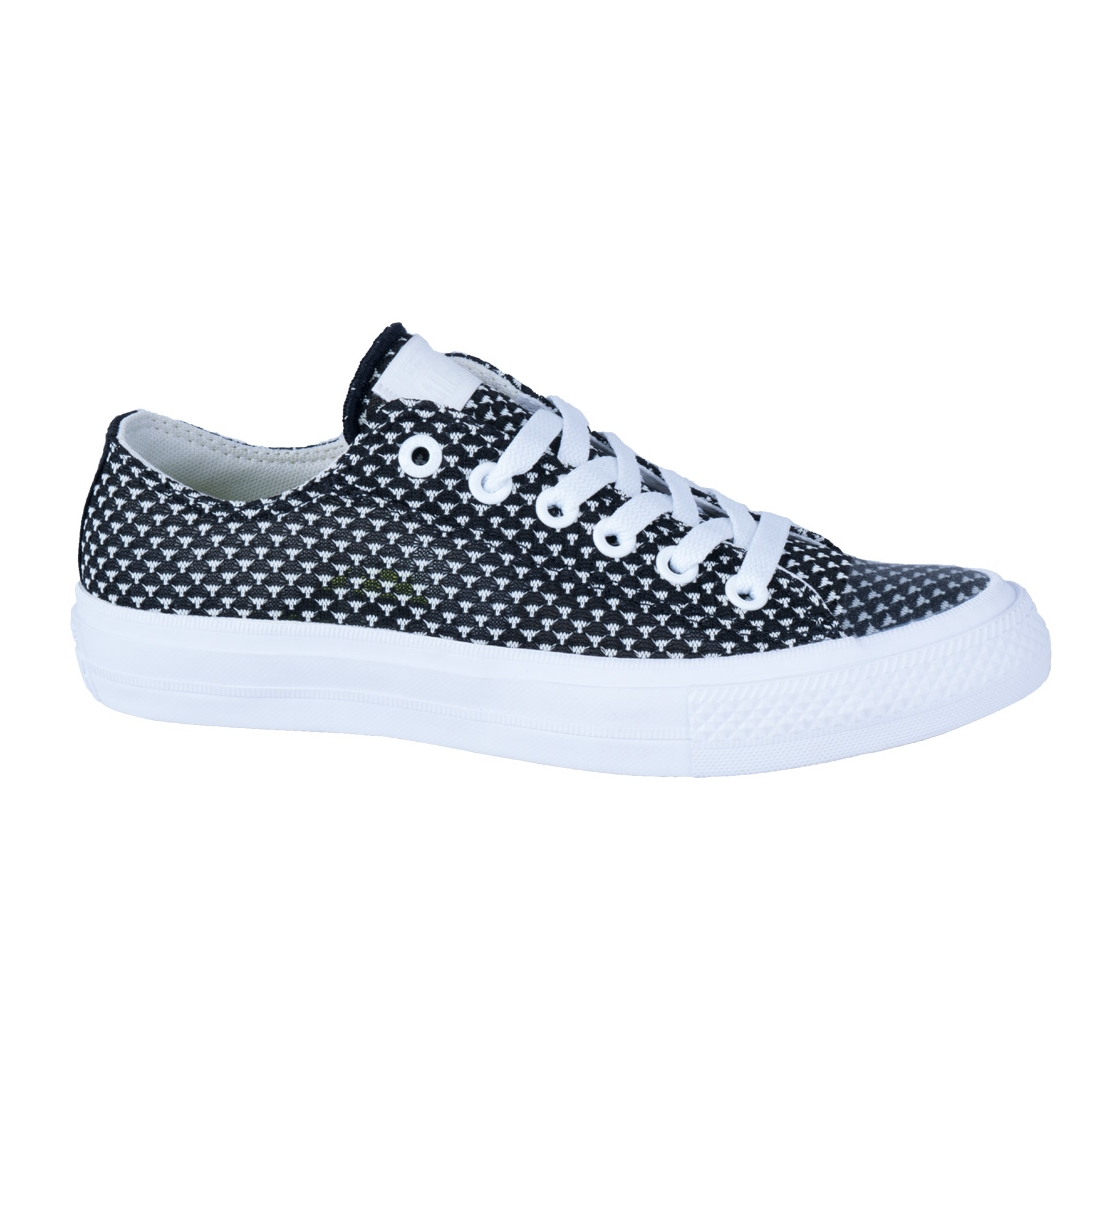 a9d11087a32a87 Converse Γυναικείο Παπούτσι Μόδας Chuck Taylor All Star 2 Festival Knit Ox  155461C